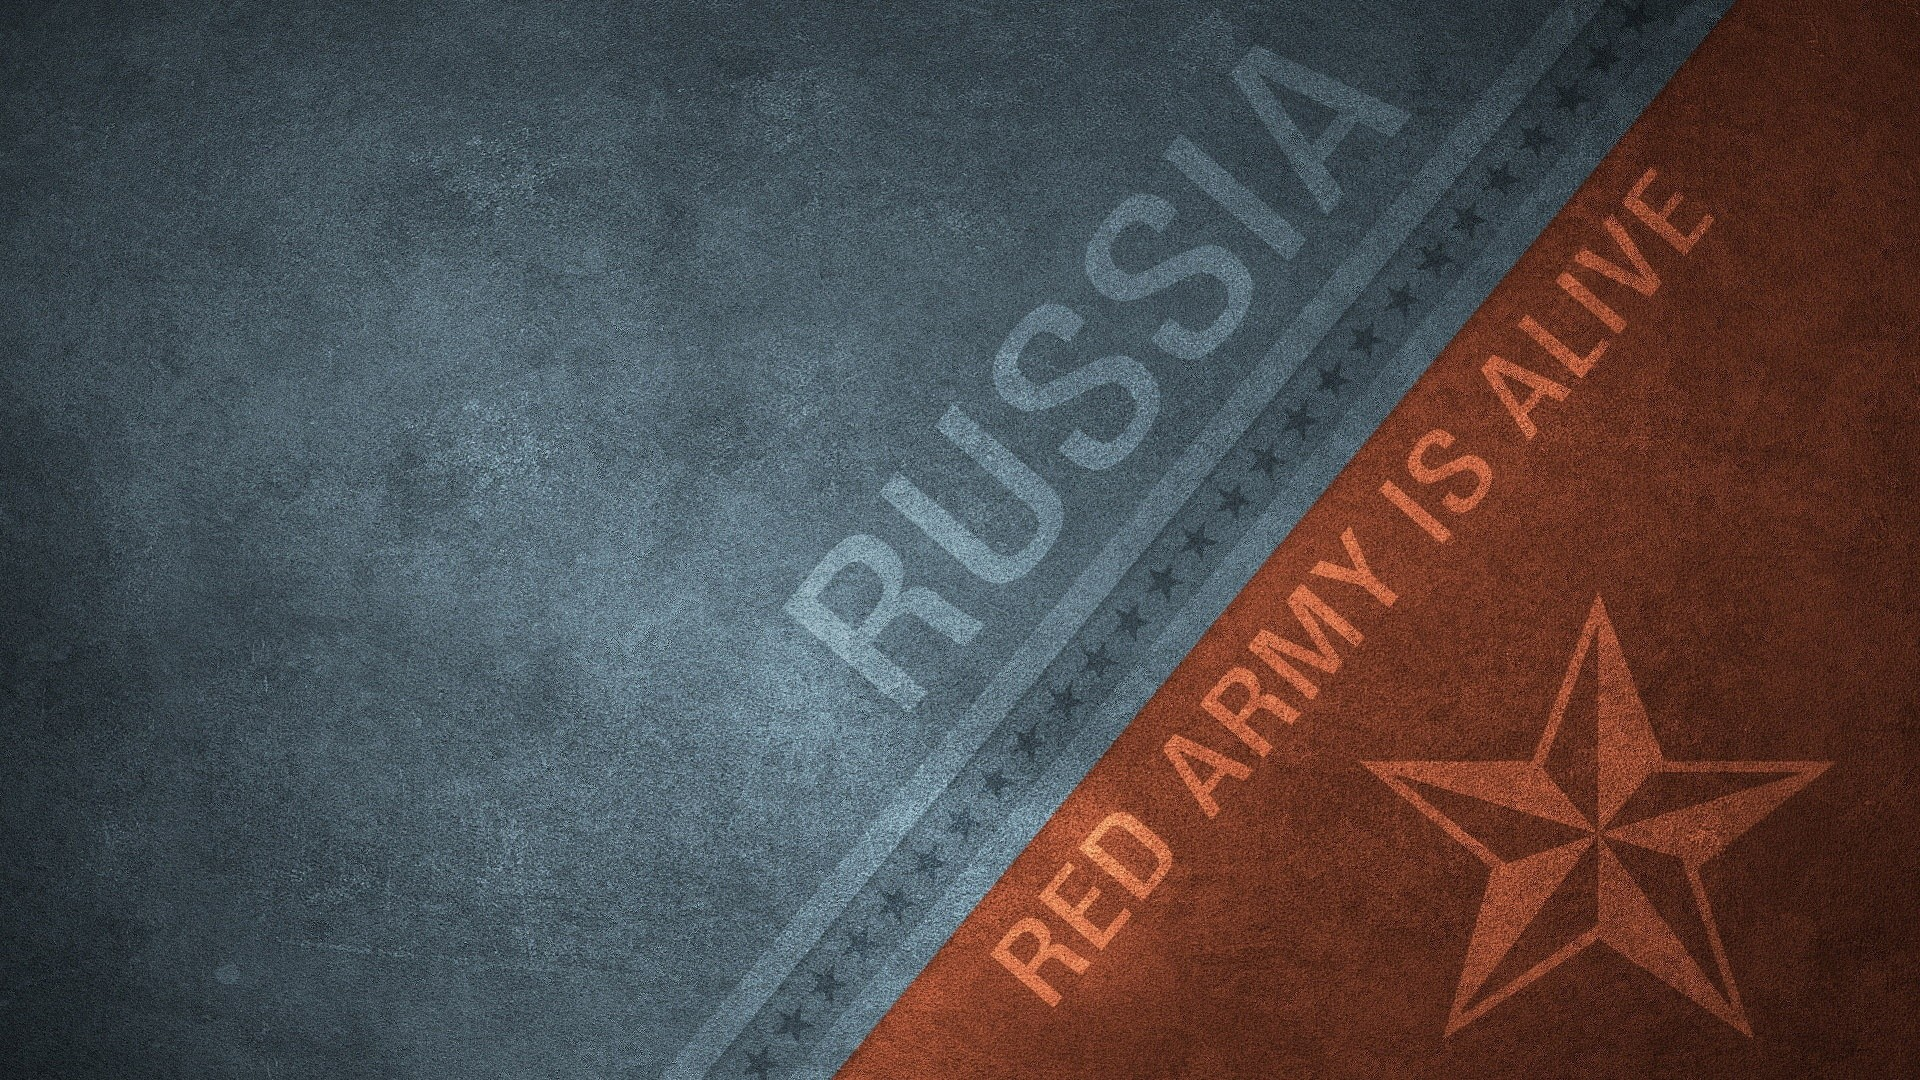 Red Army of Russia